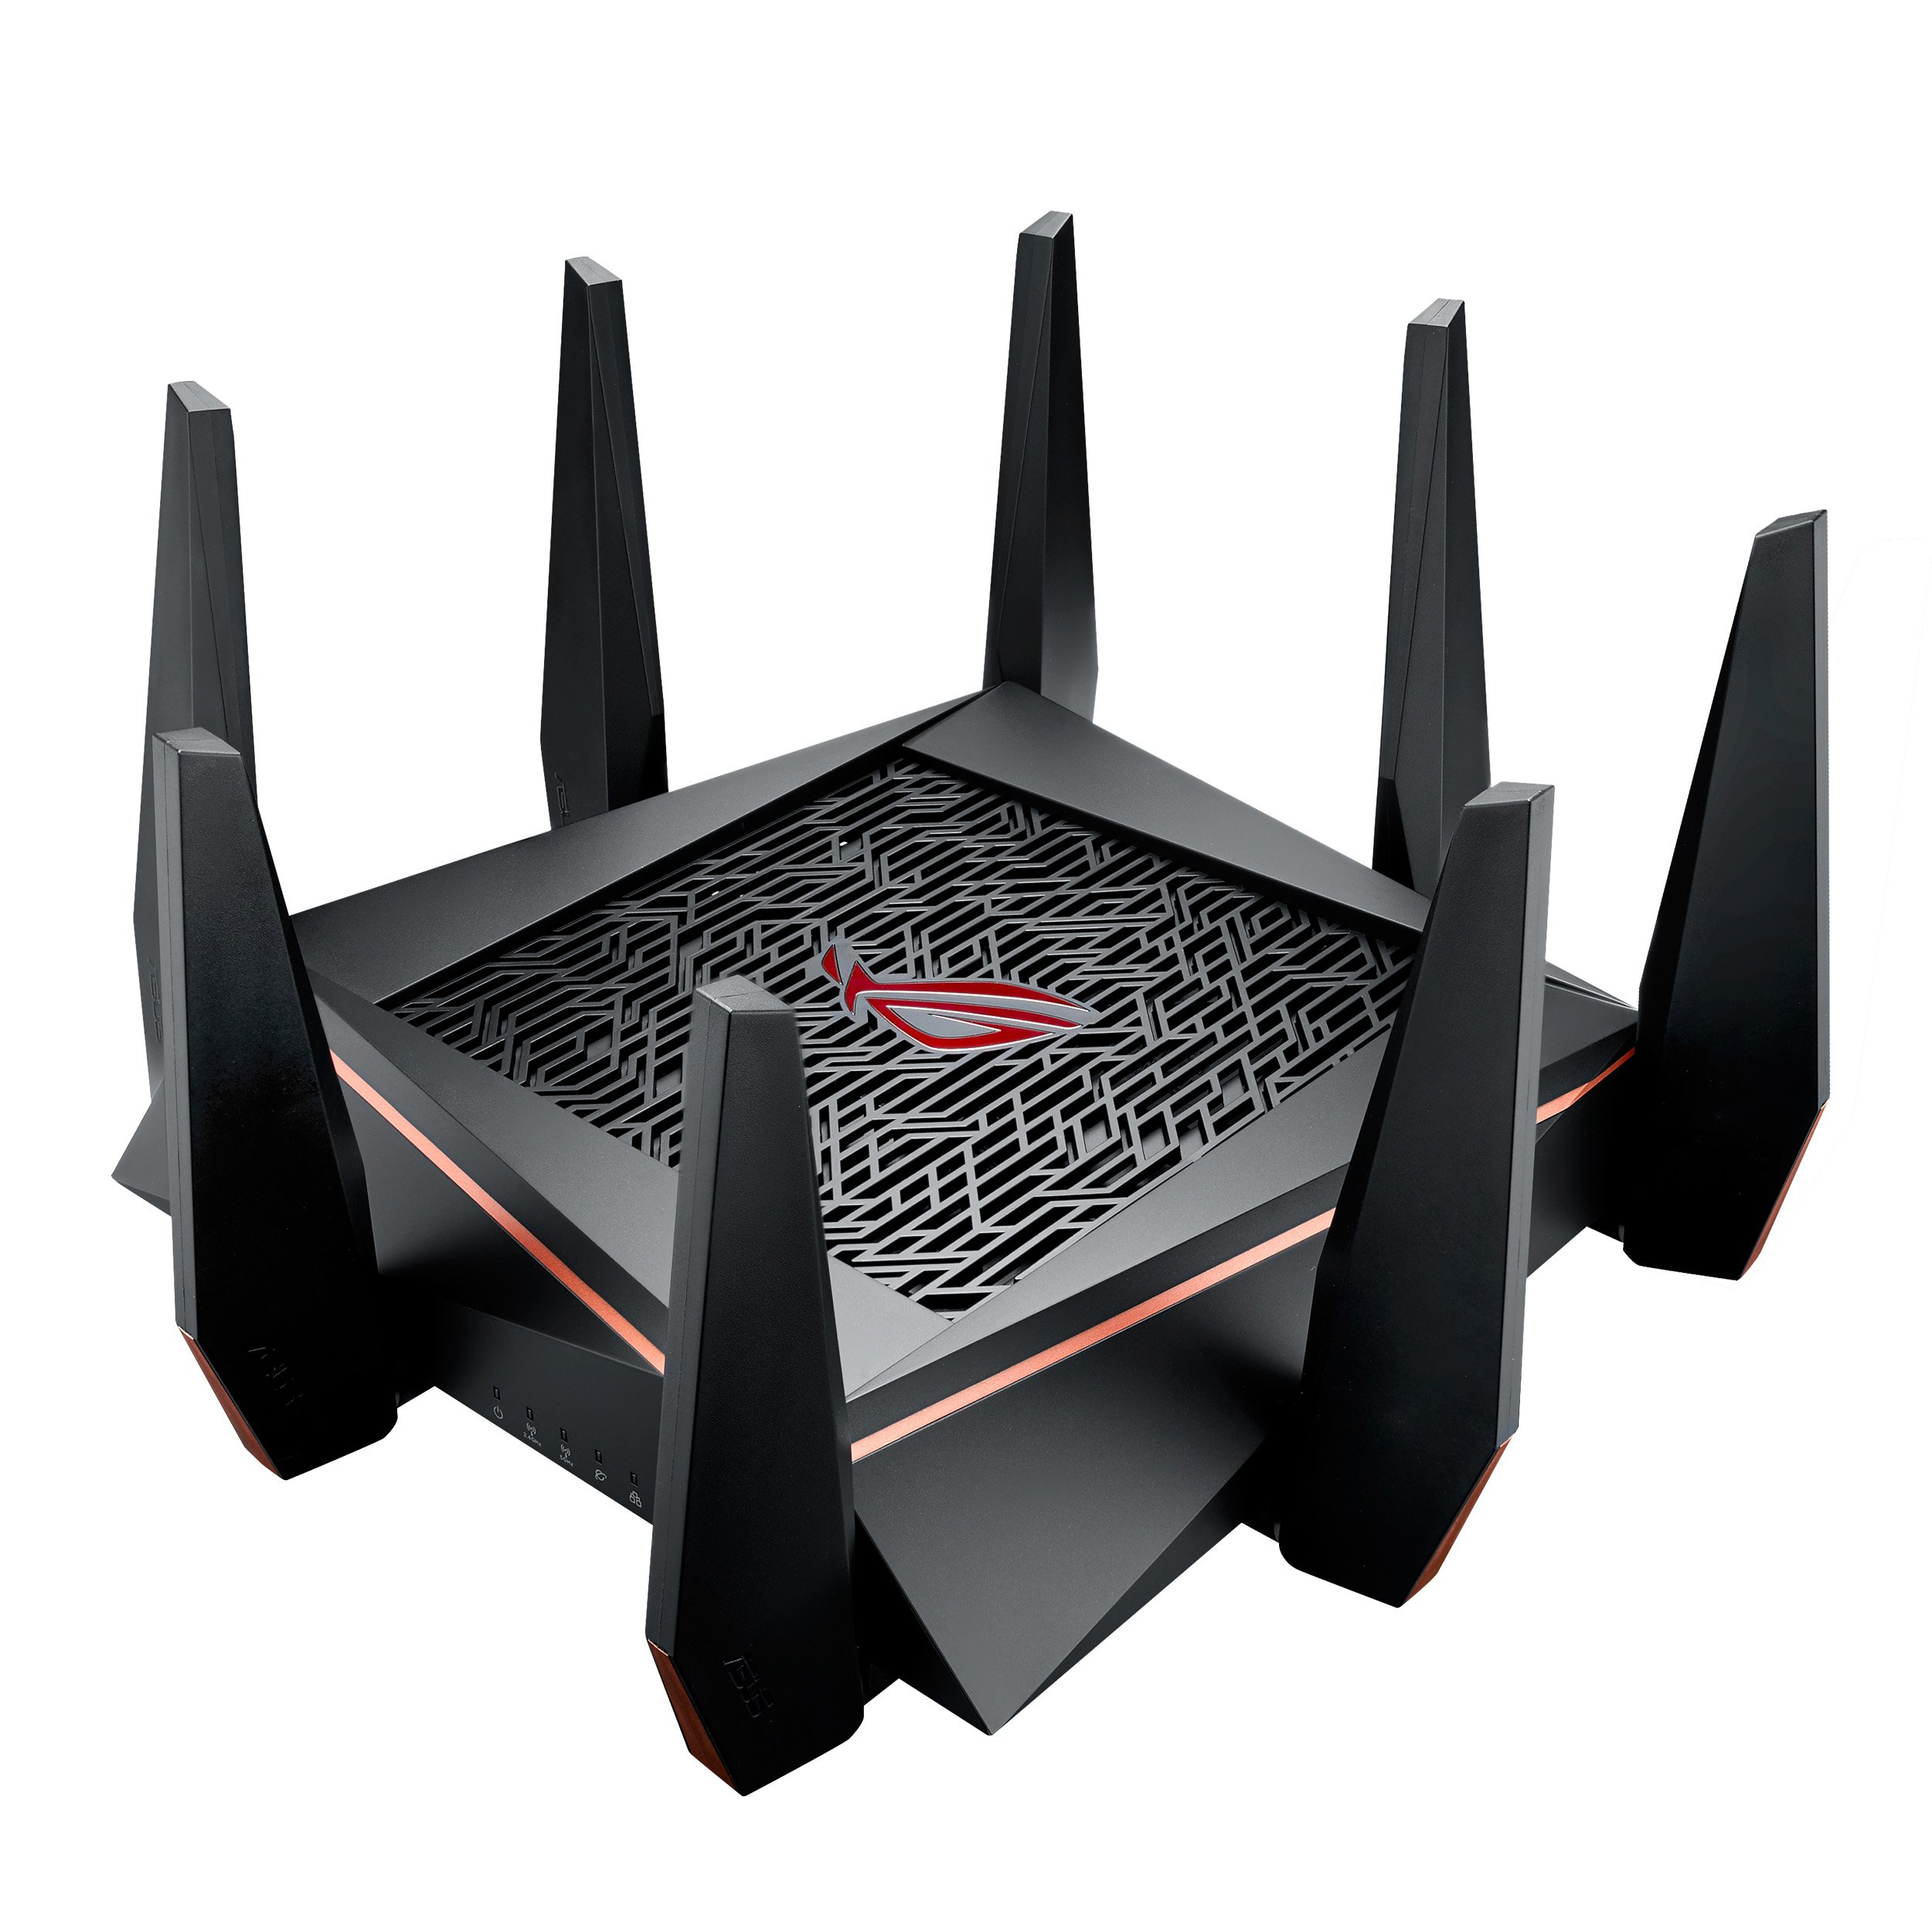 ASUS ROG AC5300 WiFi Tri-band Gigabit Wireless Router with 4x4 MU-MIMO, 8x LAN Ports, AiProtection Network Security and WTFast Game Accelerator, AiMesh Whole Home WiFi System Compatible (GT-AC5300)